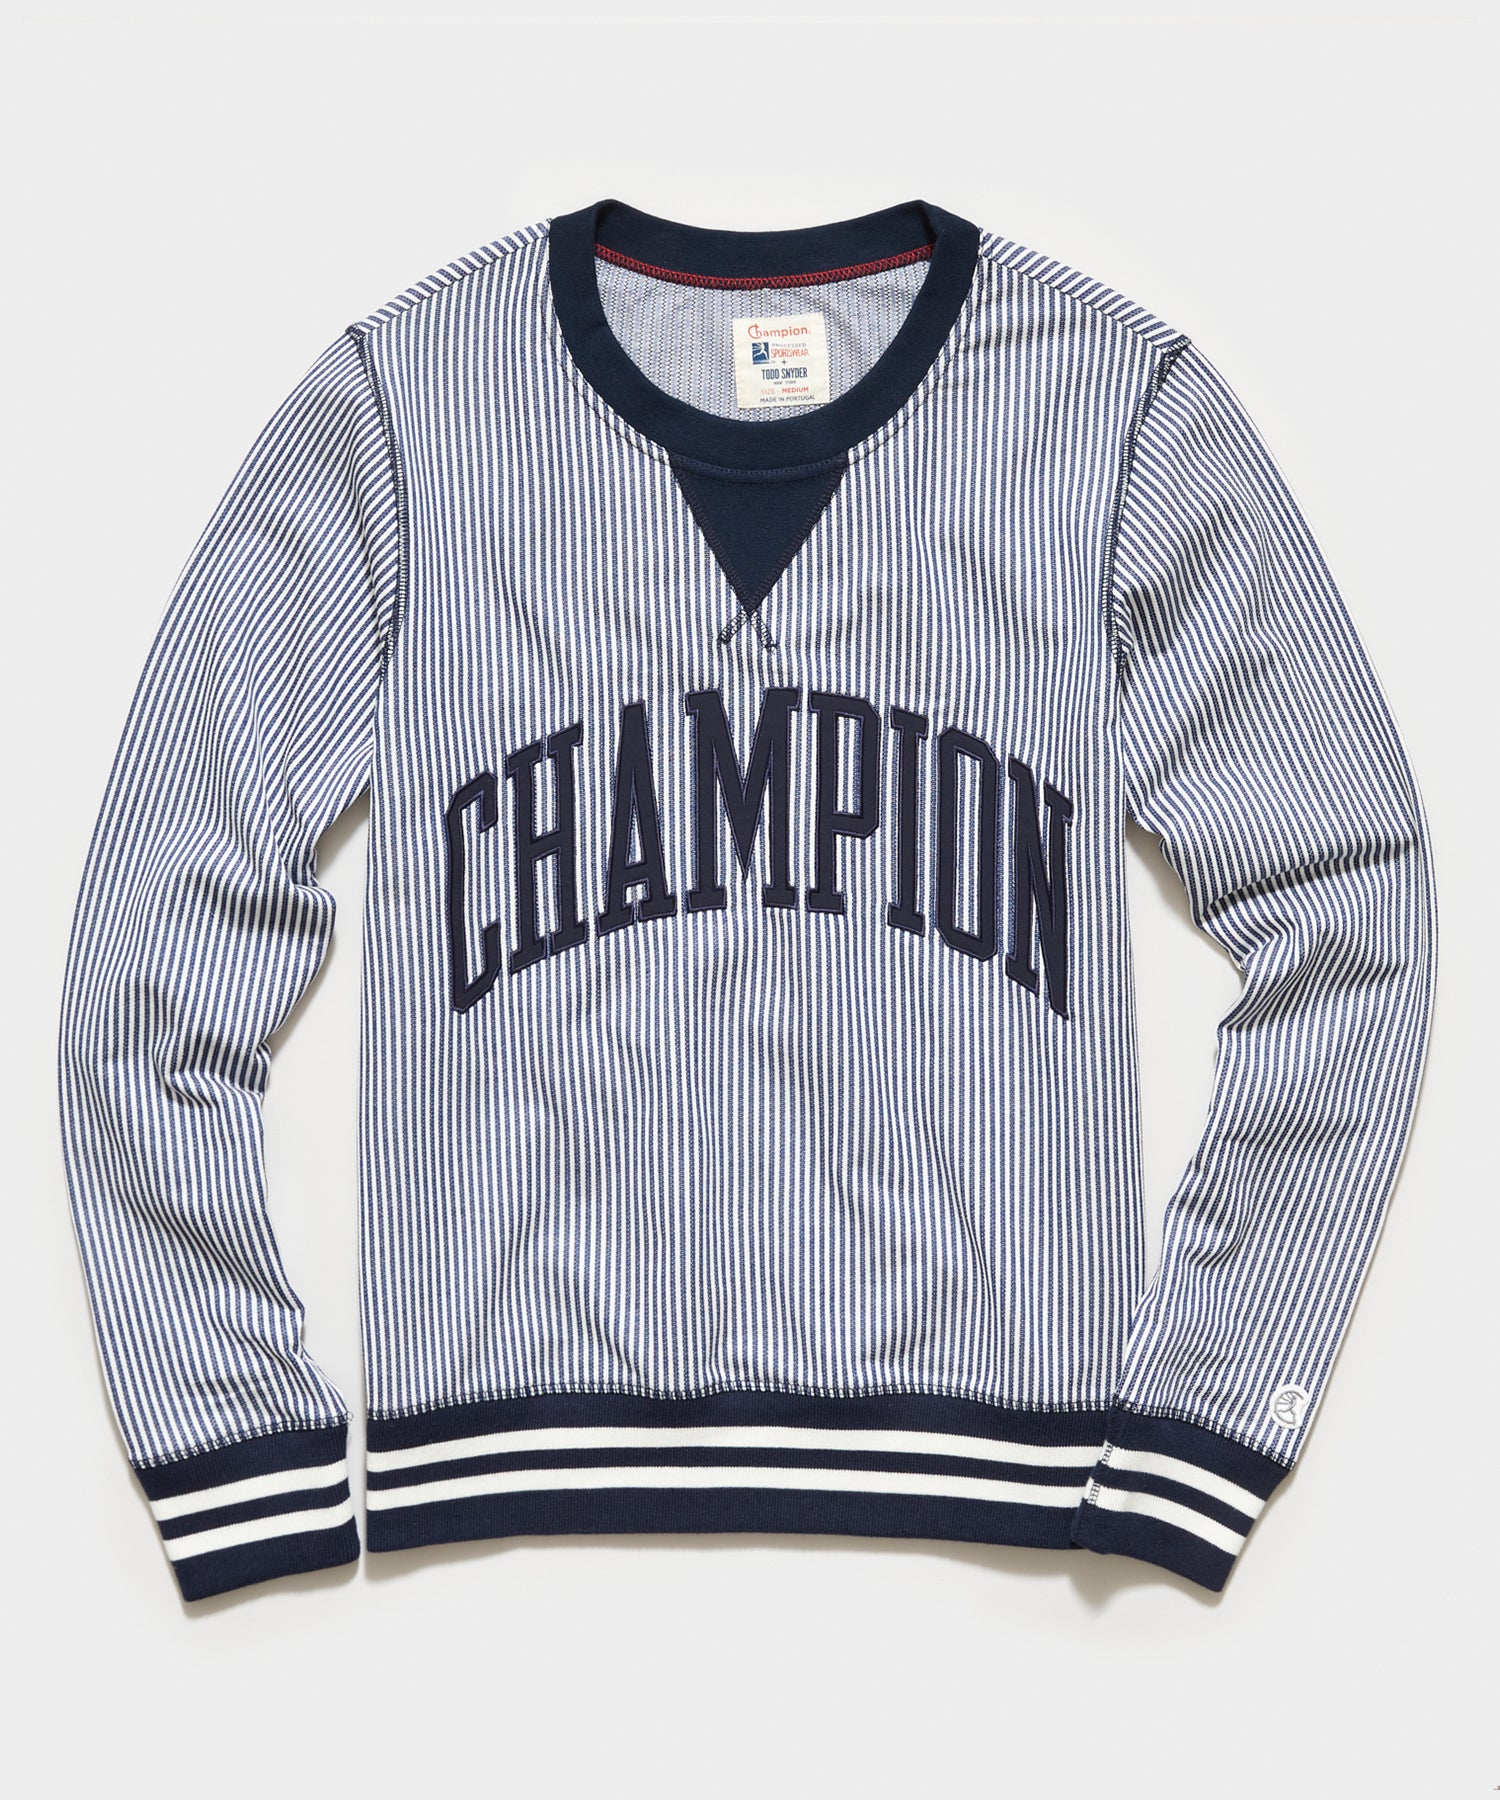 Seersucker Crewneck Sweatshirt in Navy